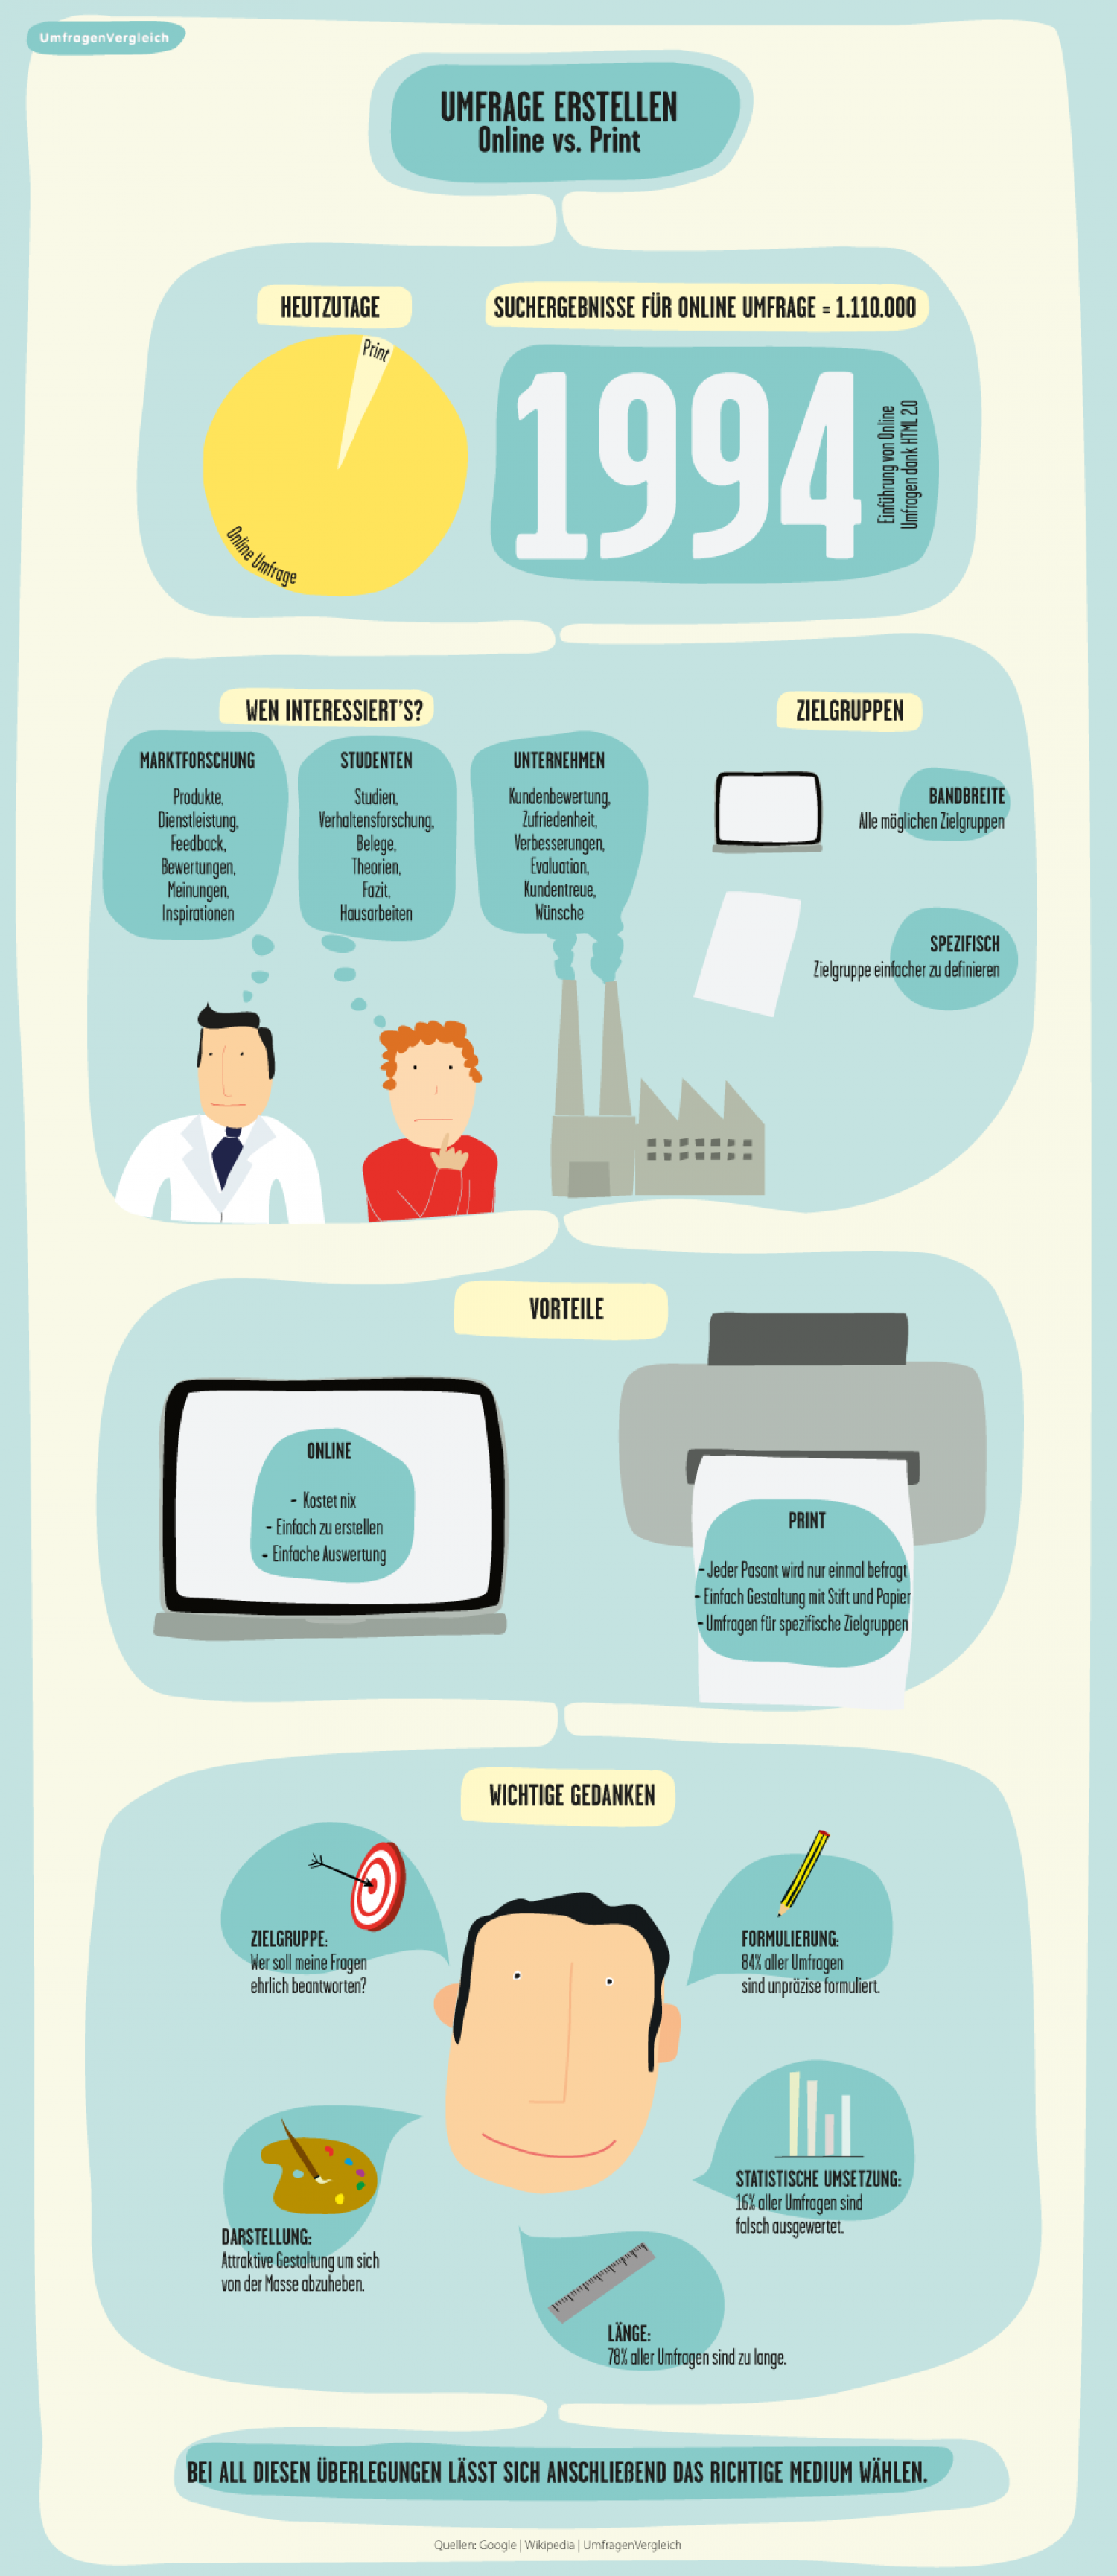 Umfrage erstellen | How to create a survey? Infographic